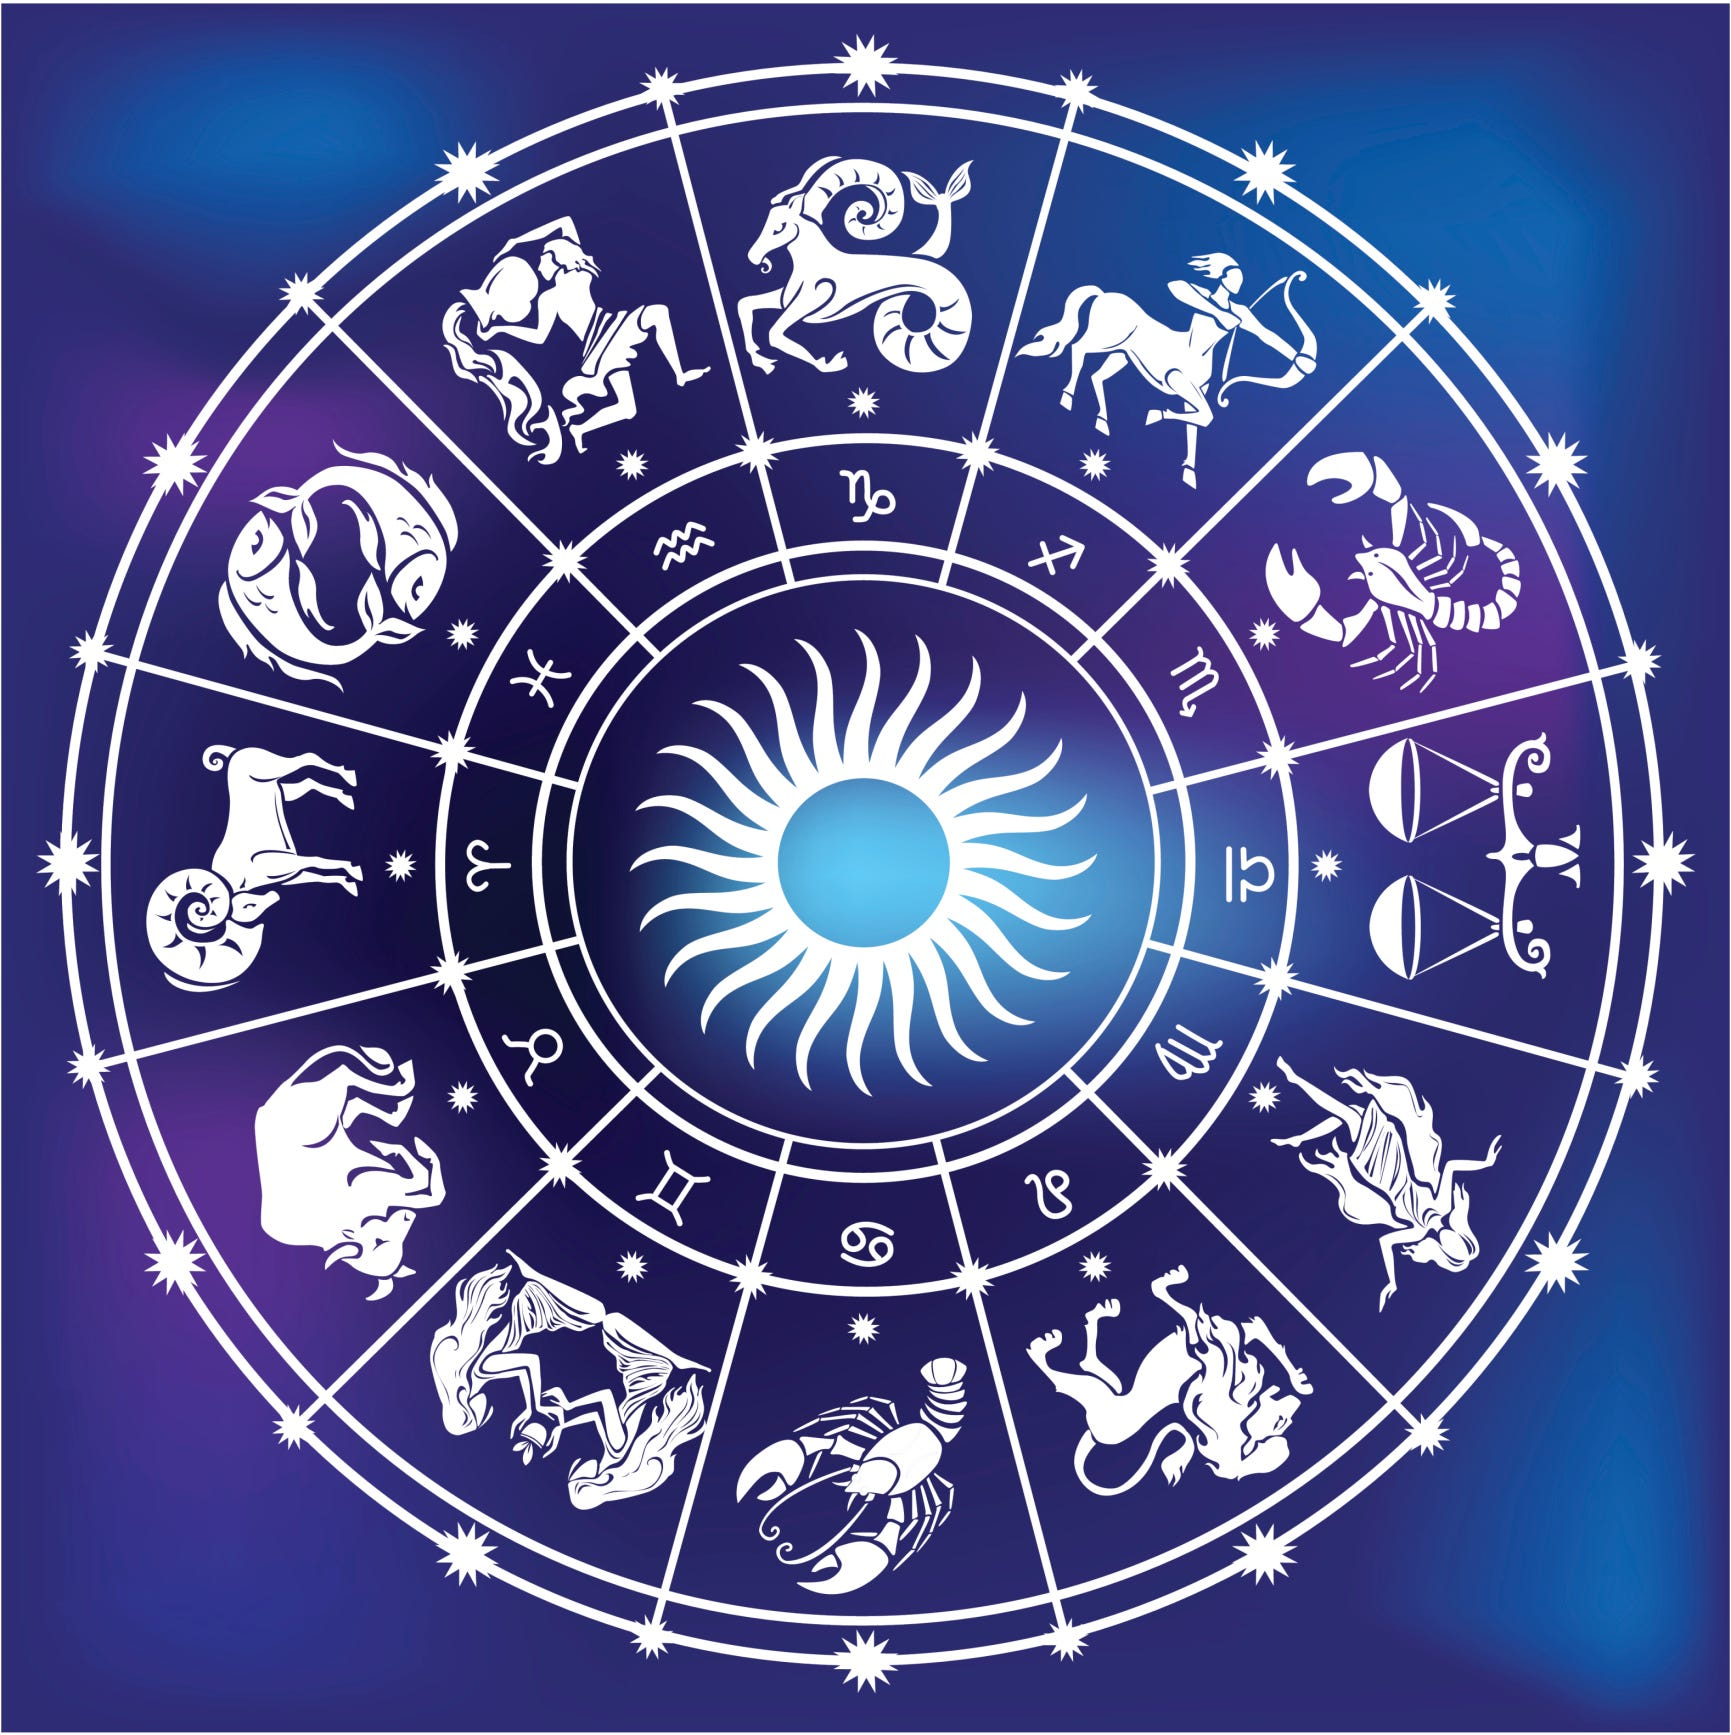 Astrology: Actuality or Apocryphal?